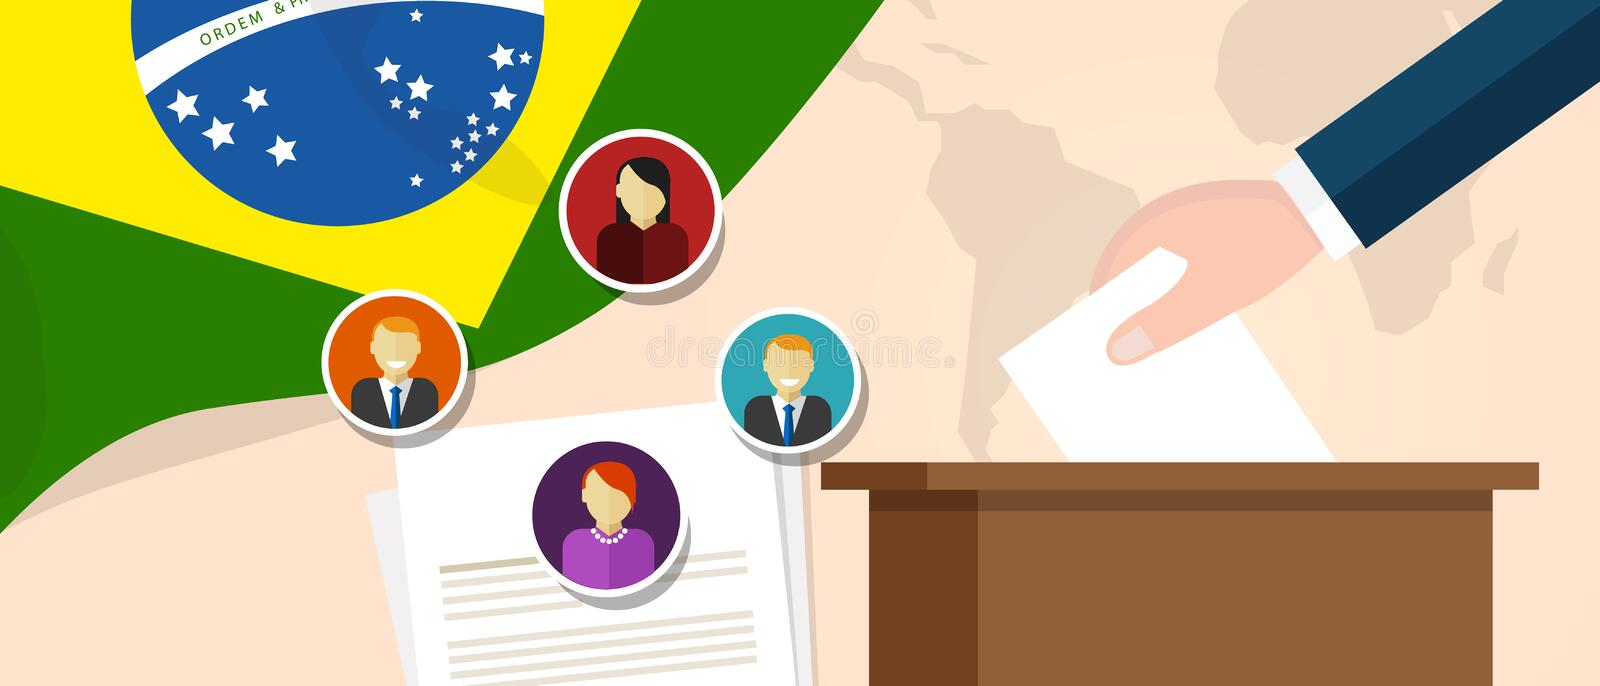 Brazil democracy political process selecting president or parliament member with election and referendum freedom to vote. Vector vector illustration